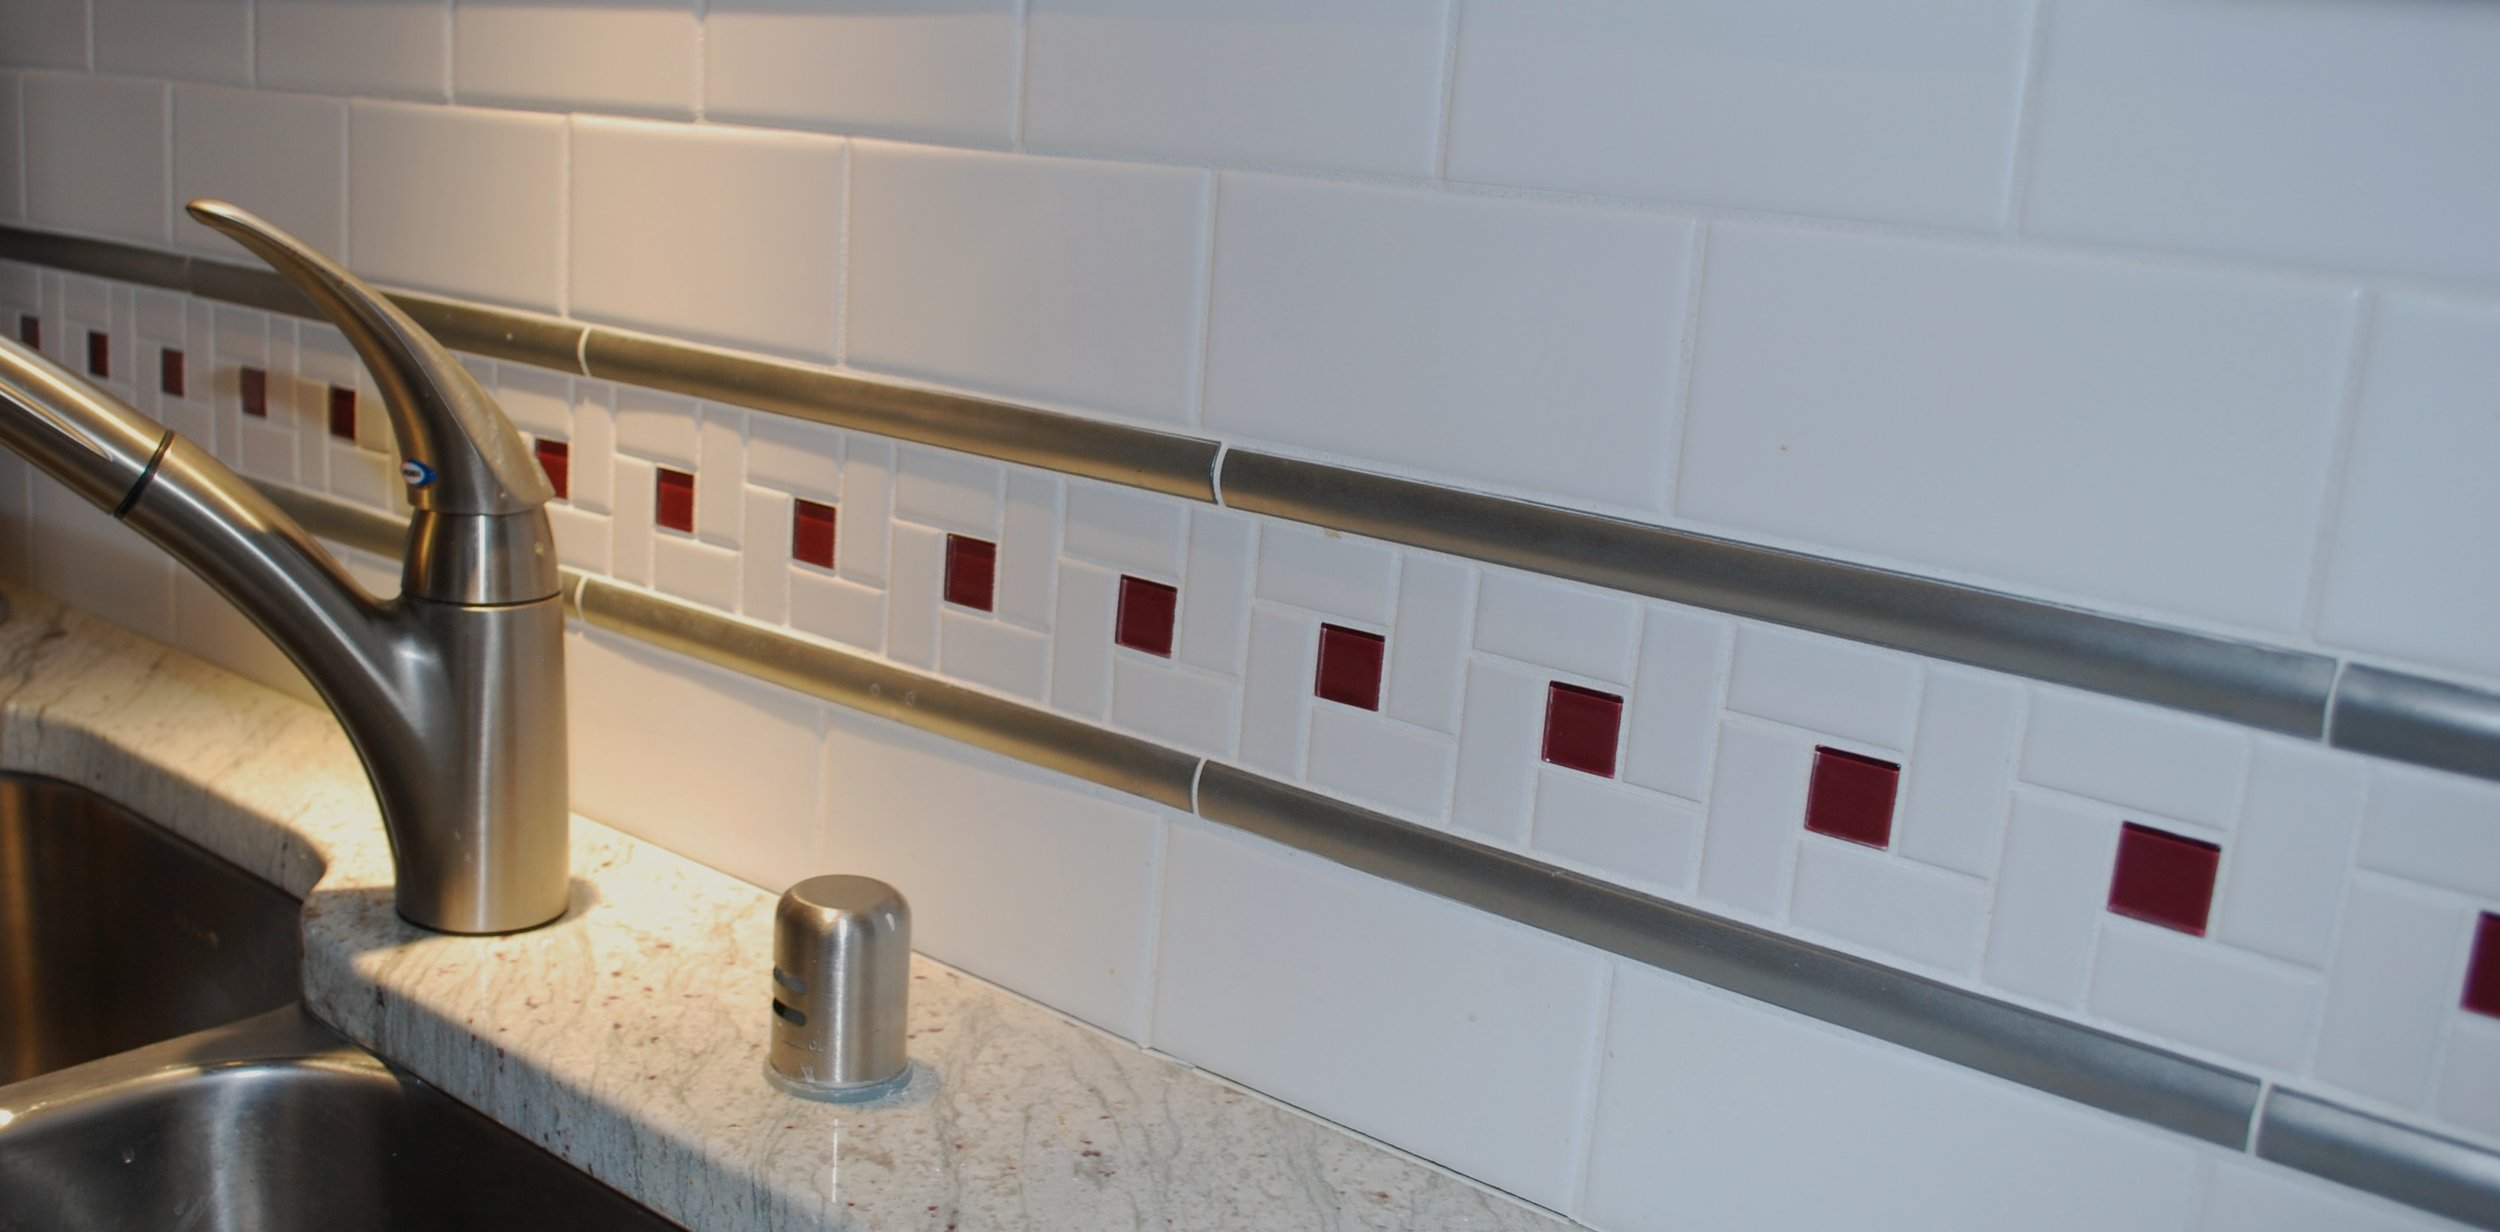 Back splash.JPG